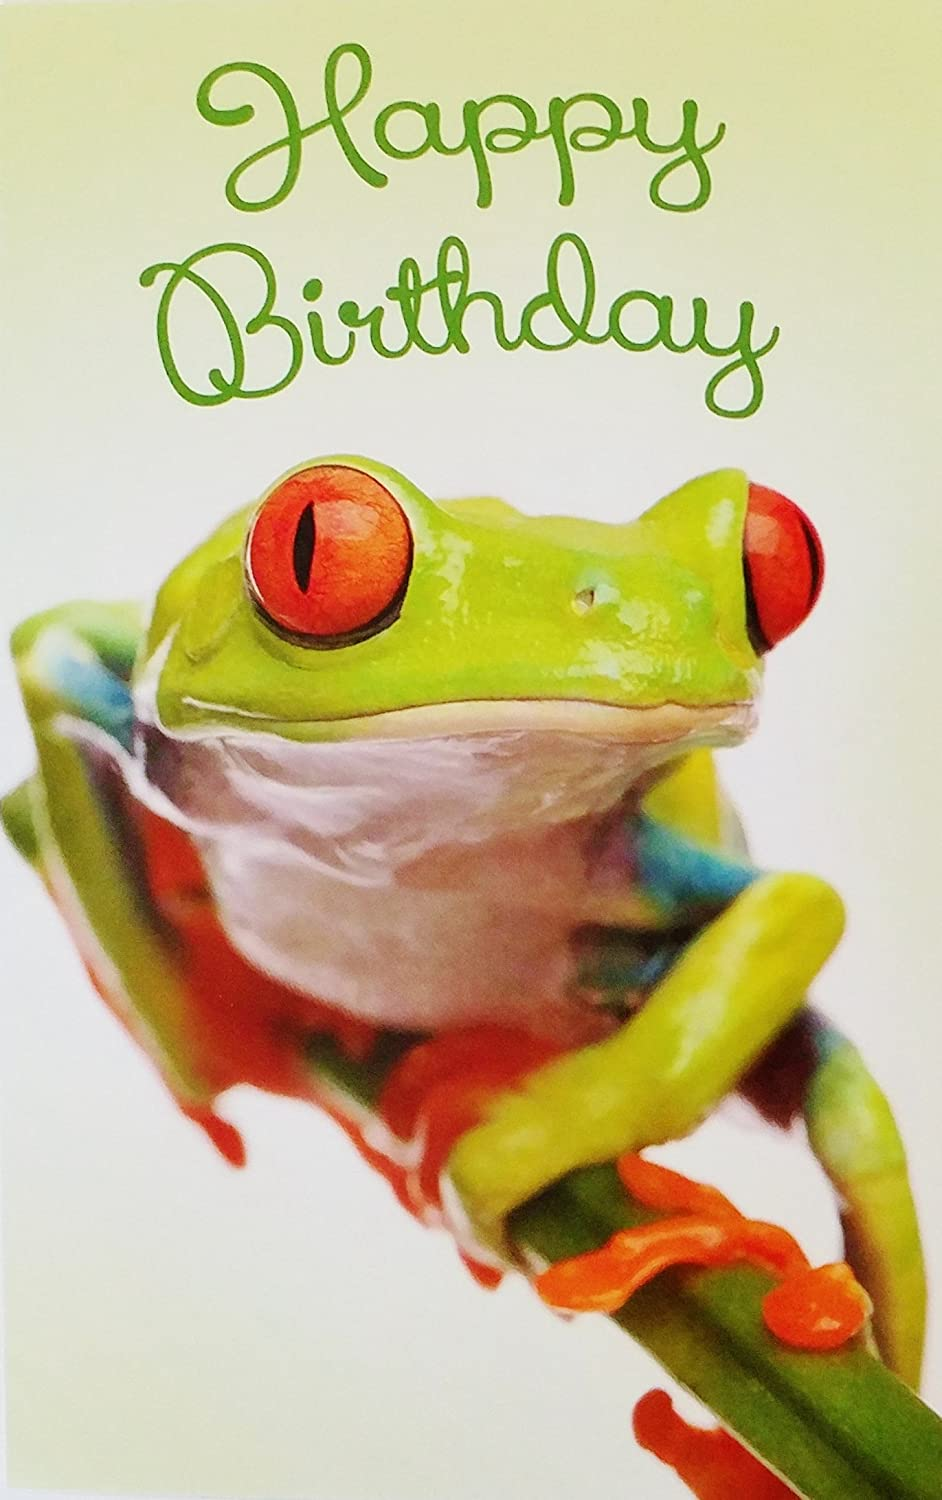 Amazon Com Happy Birthday Make It Bright Make It Bold Make It Amazing Greeting Card W Tree Frog Office Products